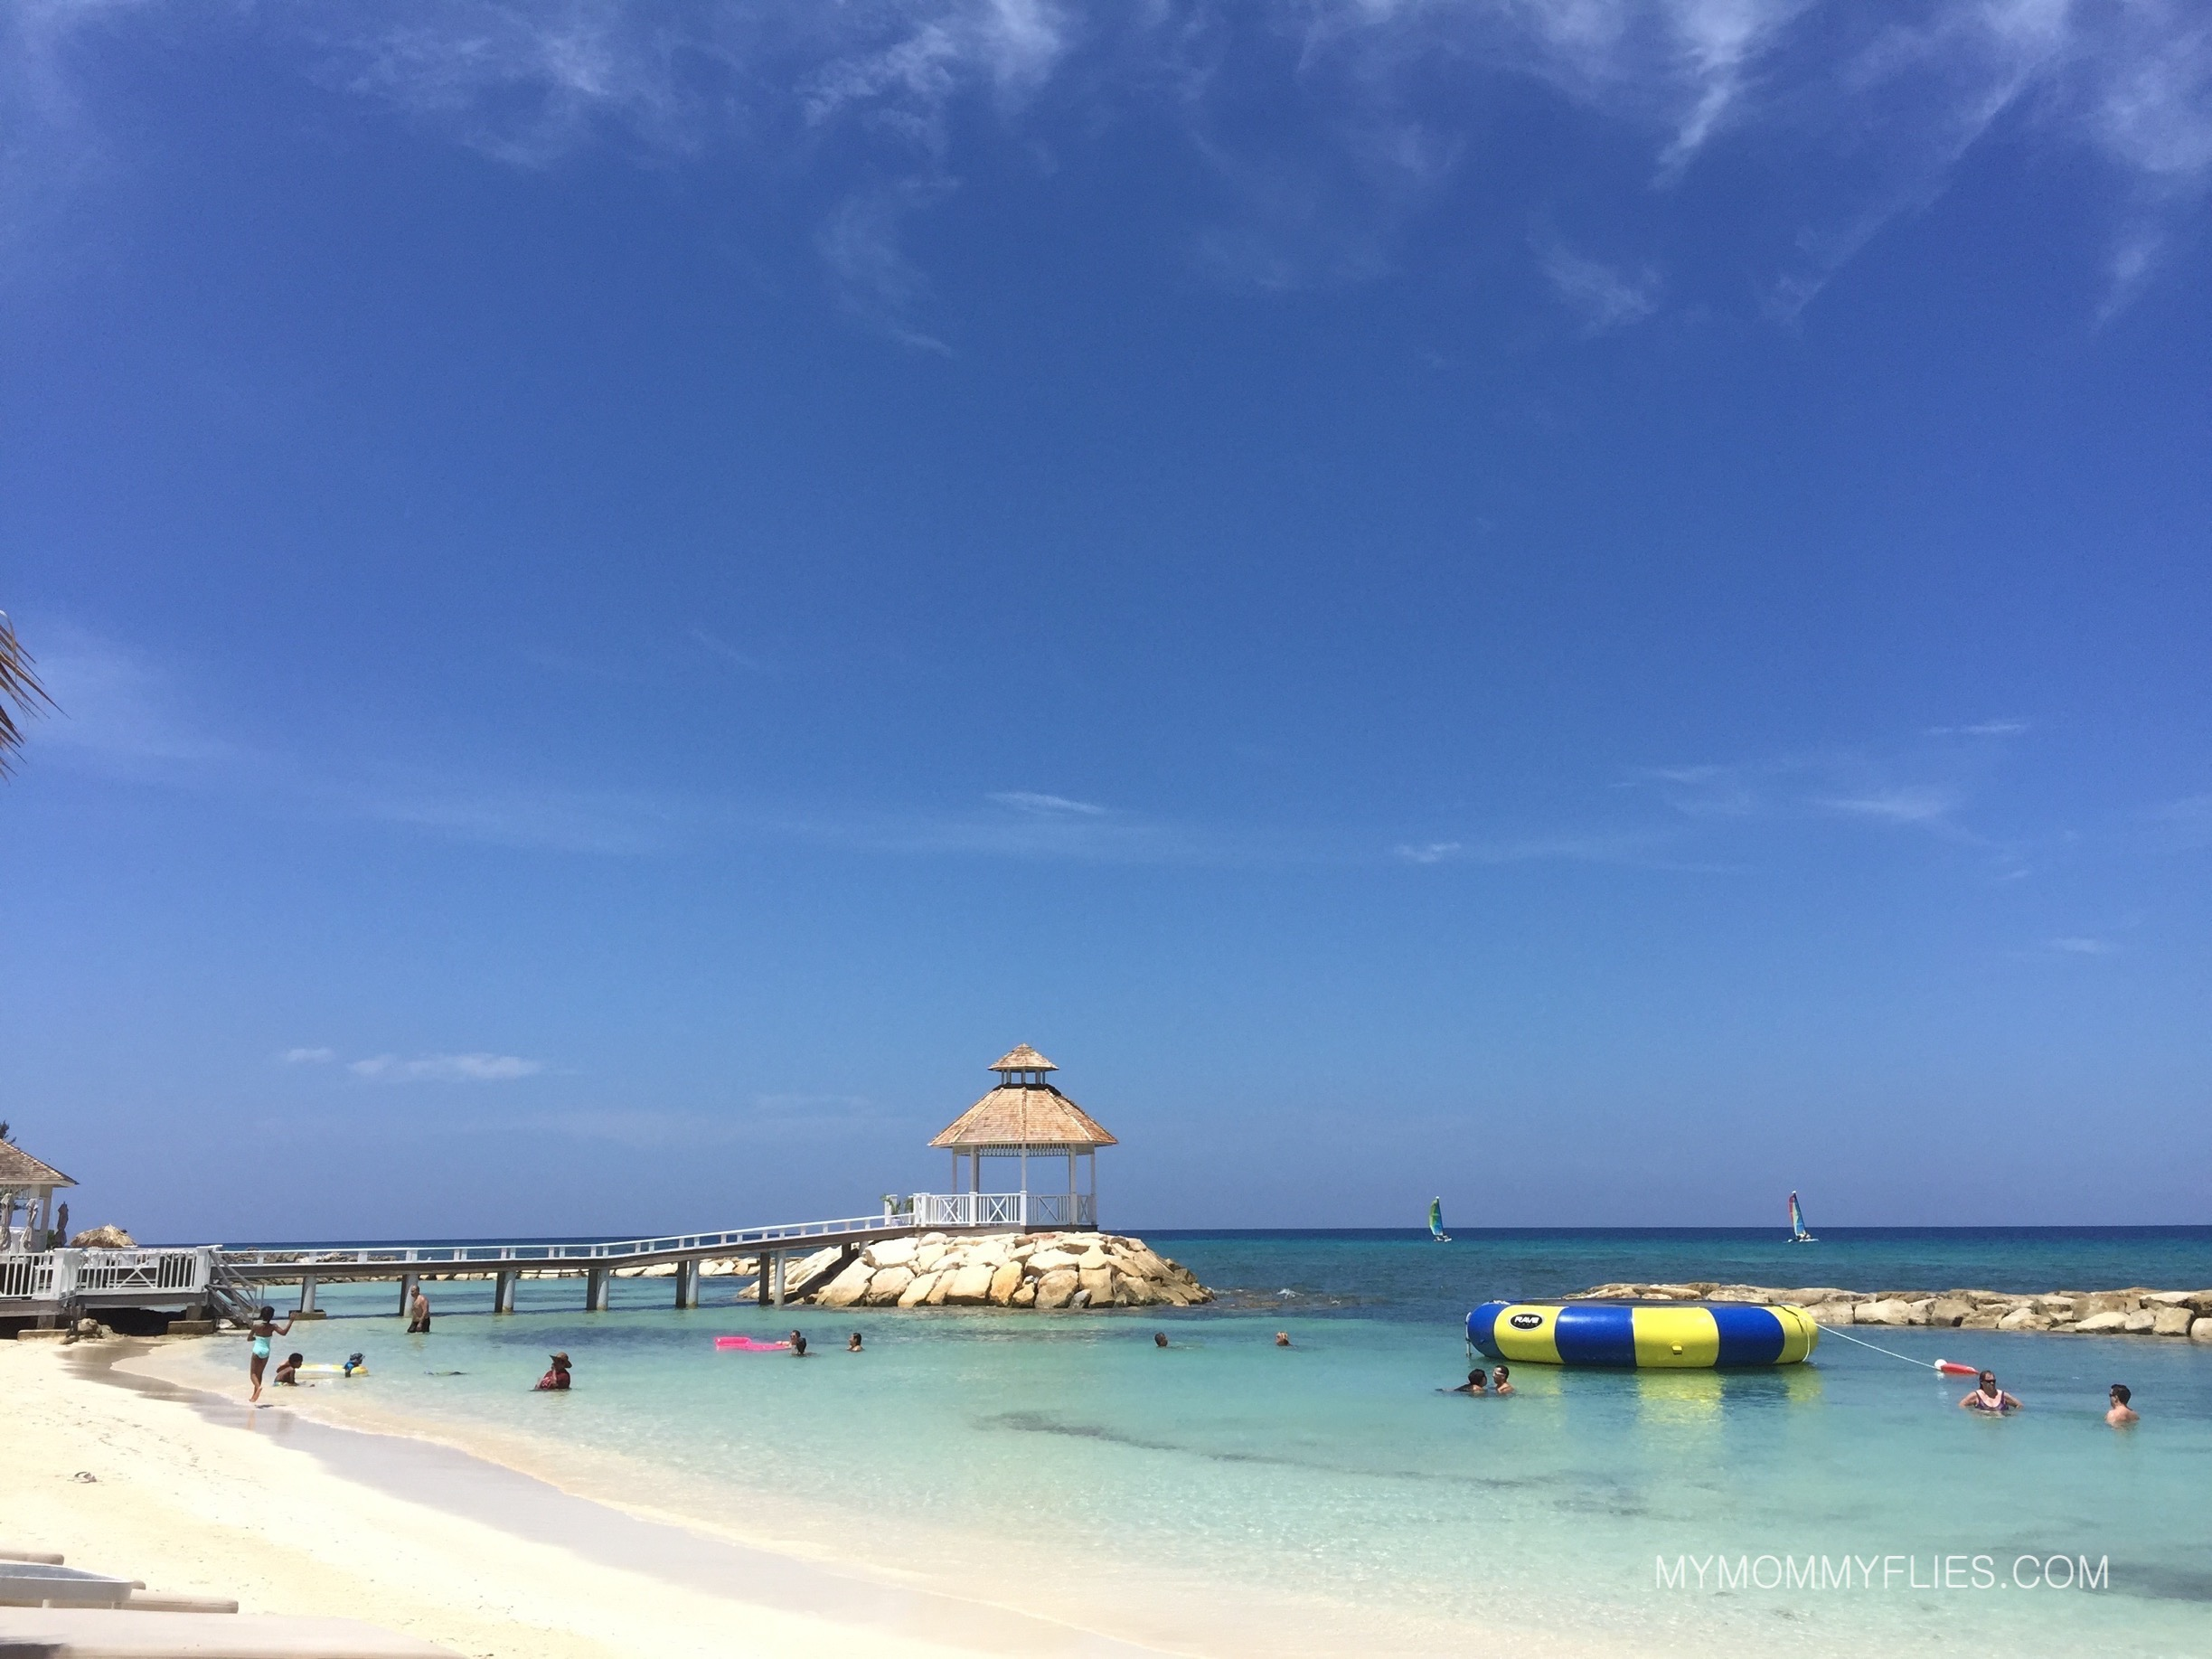 Family_Travel_Hyatt_Ziva_Montego_Bay_Jamaica